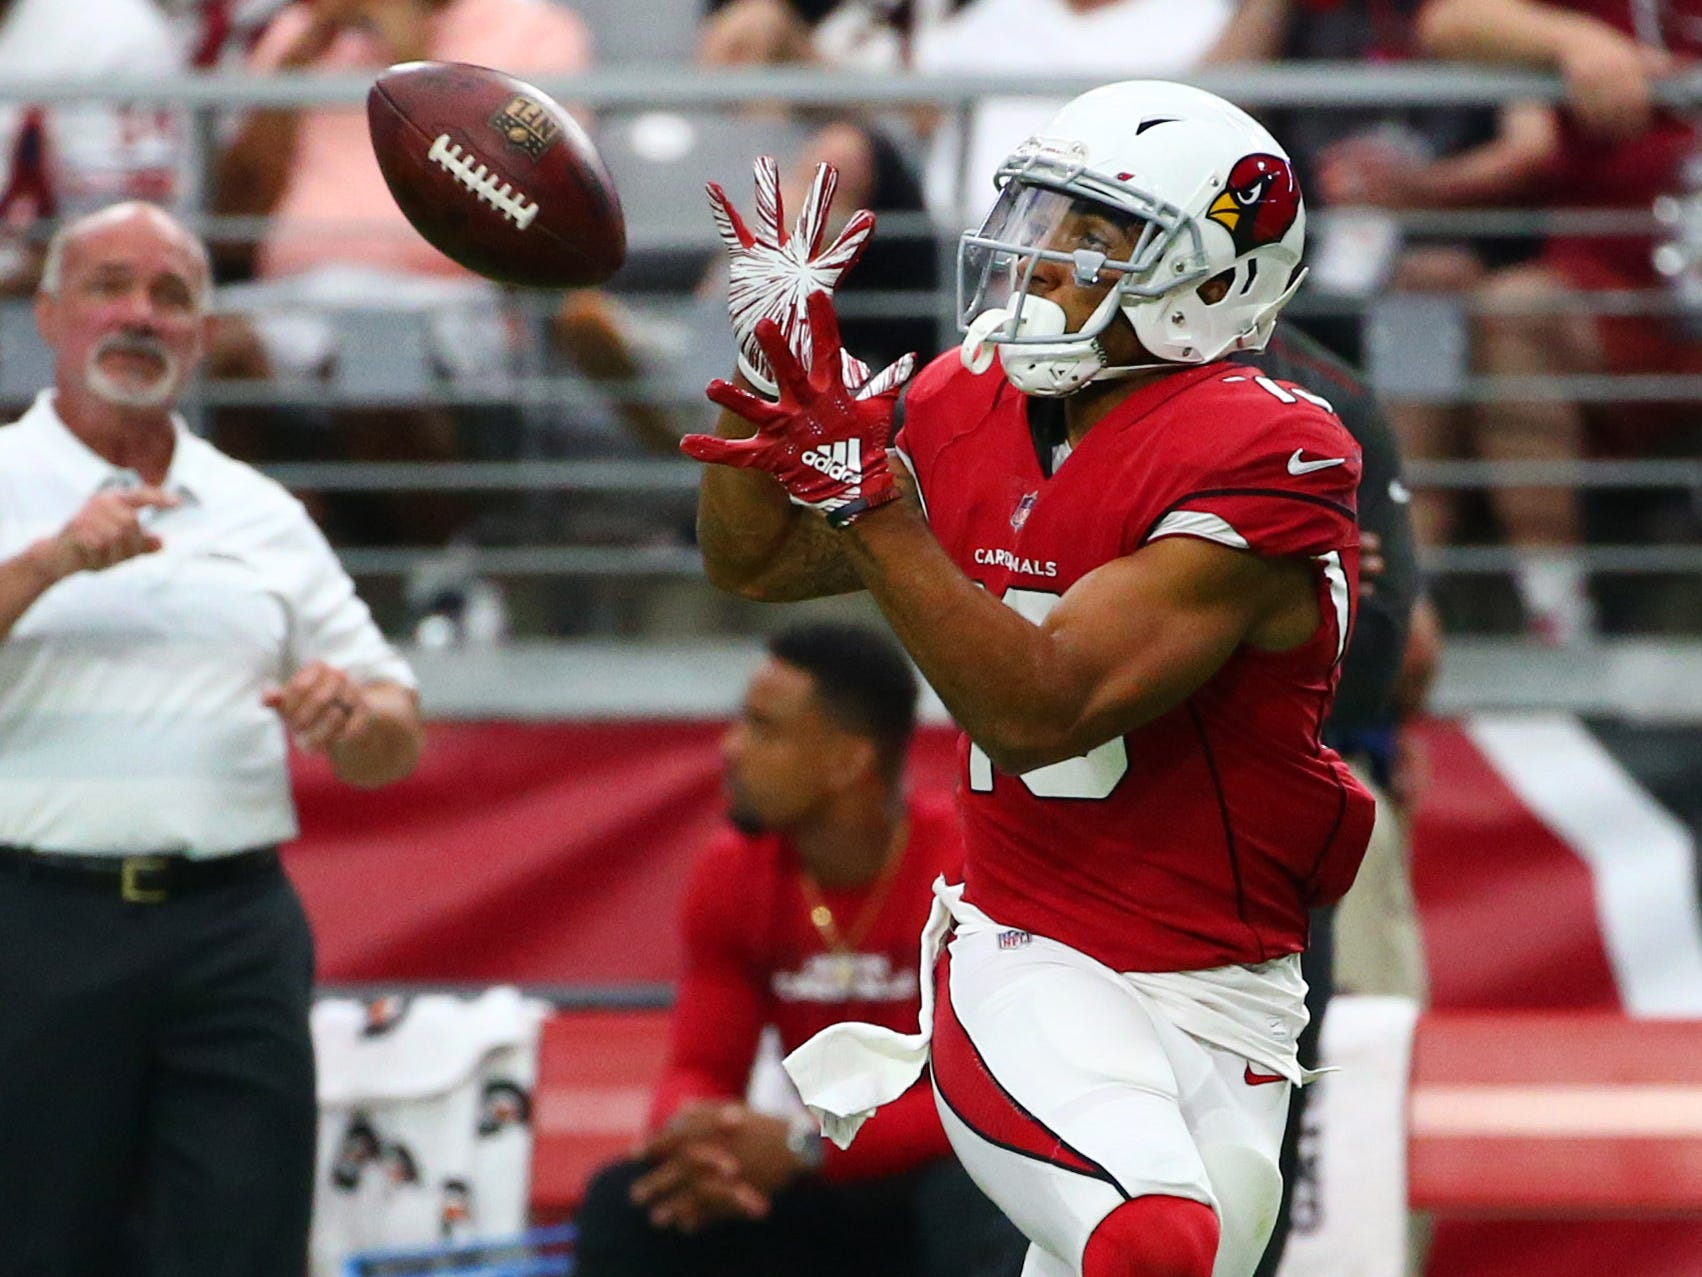 Arizona Cardinals wide receiver Christian Kirk makes a first-down on this catch from Sam Bradford against the Chicago Bears in the second half at State Farm Stadium in Glendale, Ariz.